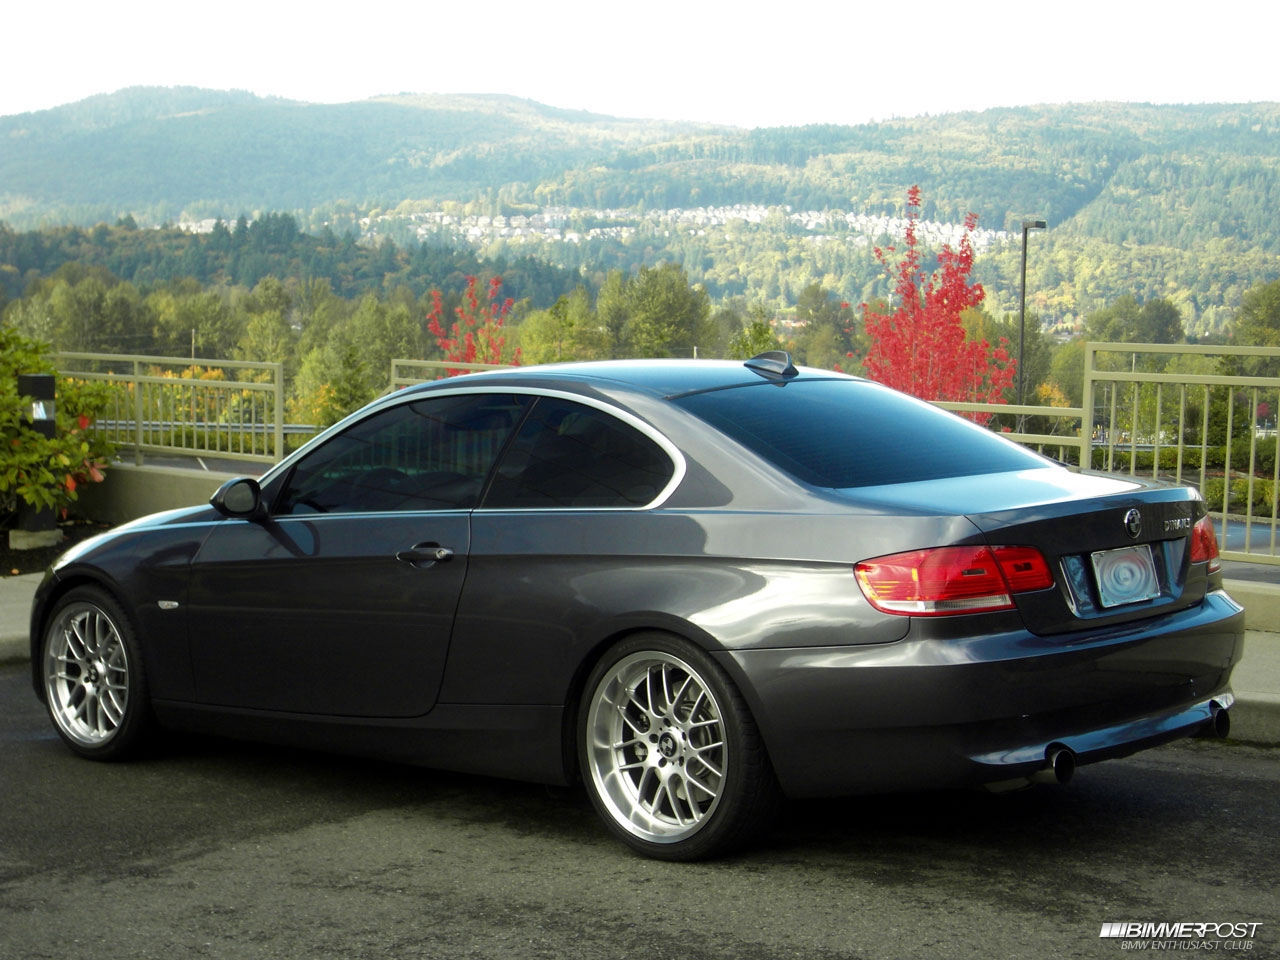 Superlubricity S 2008 Dinan S 335i Coupe Stage 3 Sold Bimmerpost Garage